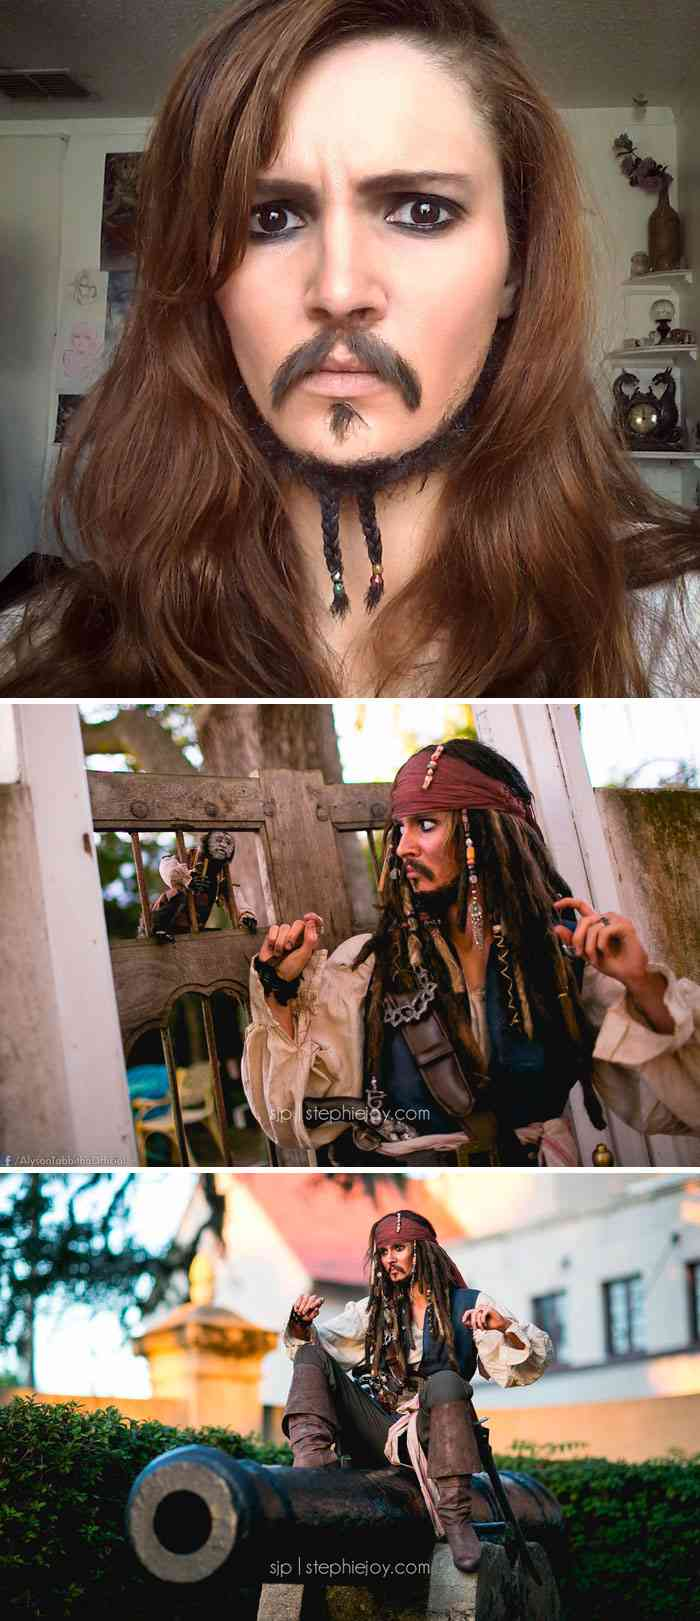 cosplay alyson pirates